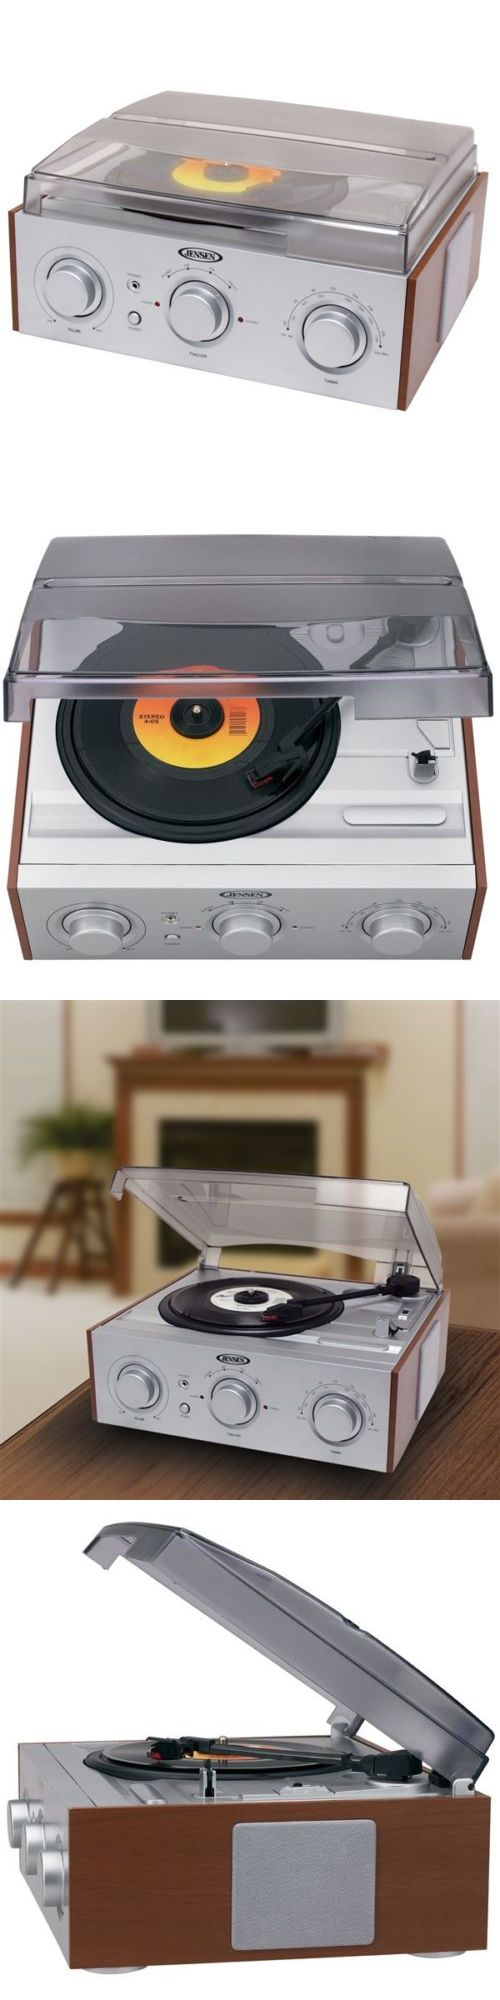 Record Players Home Turntables: Jensen Jta-220 3-Speed Am/Fm Stereo Turntable Record Player W/ Built In Speakers BUY IT NOW ONLY: $47.95